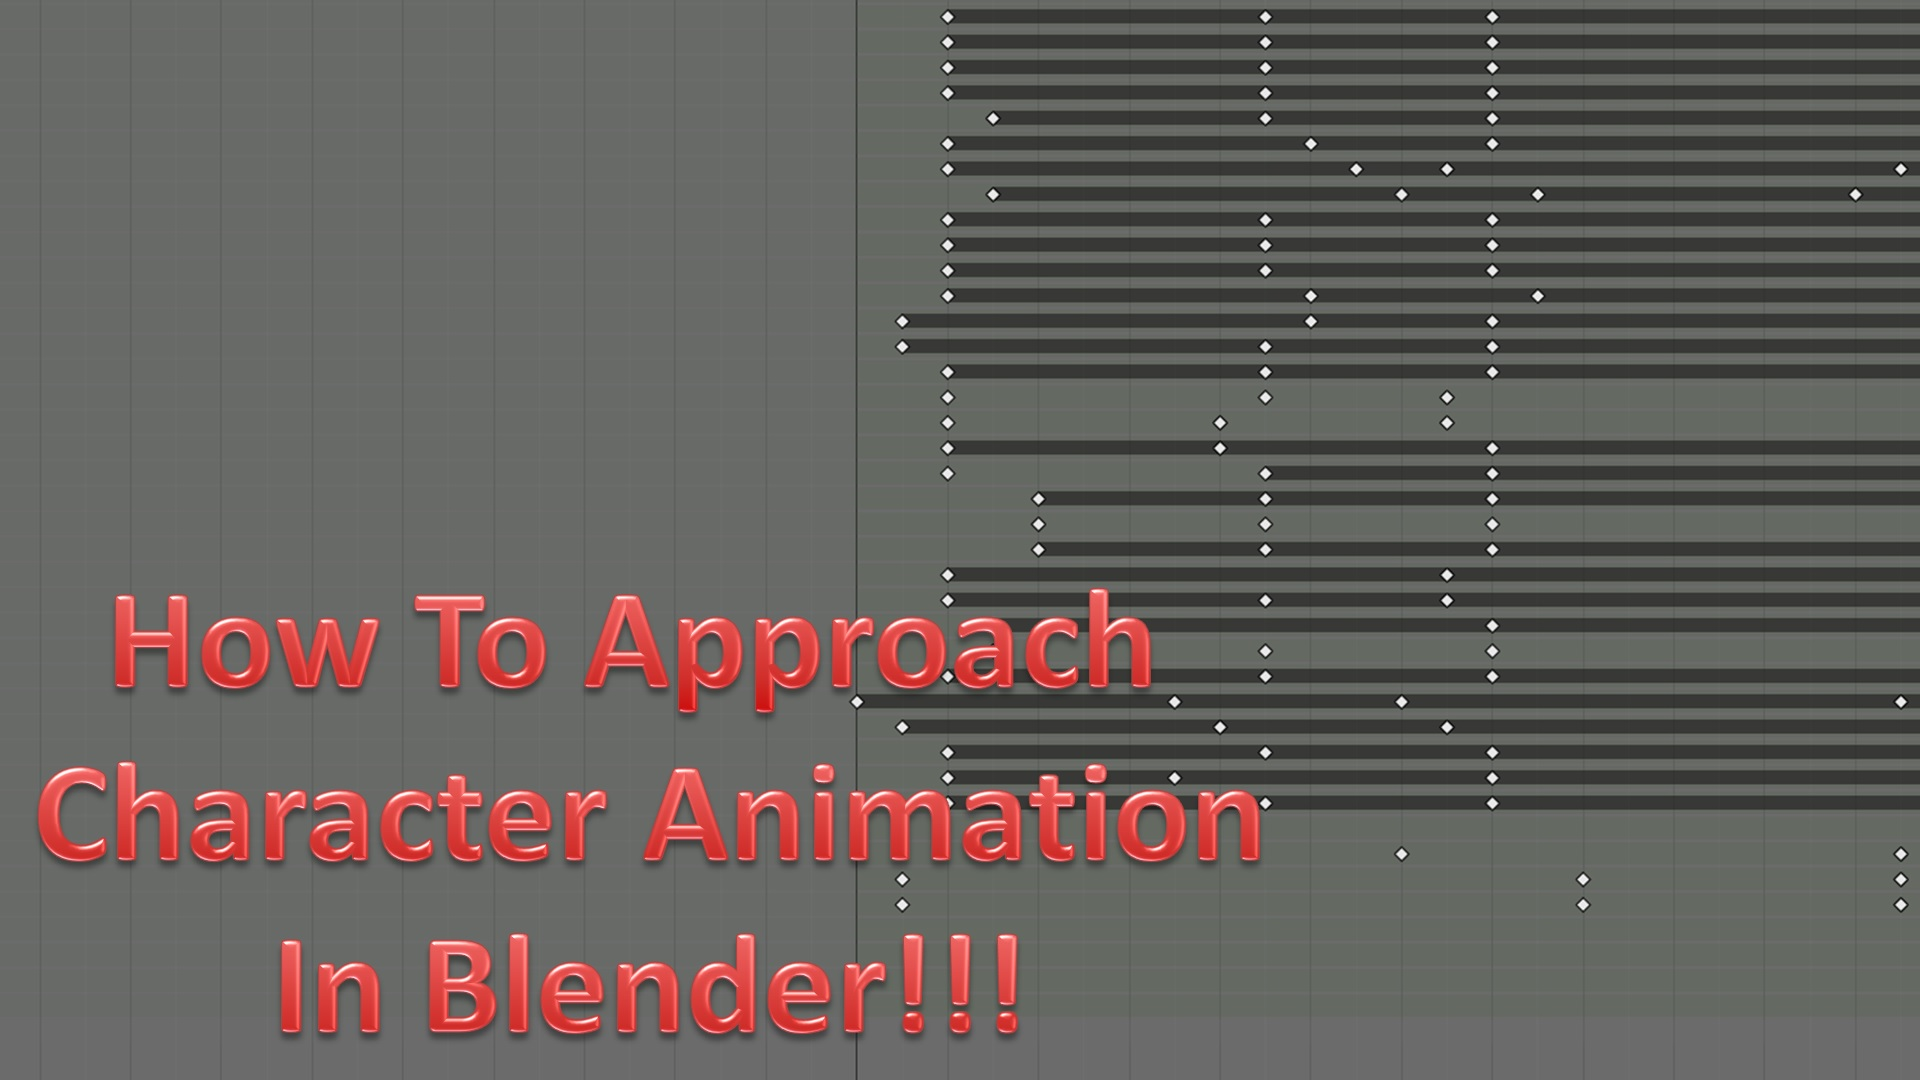 How To Approach Character Animation!